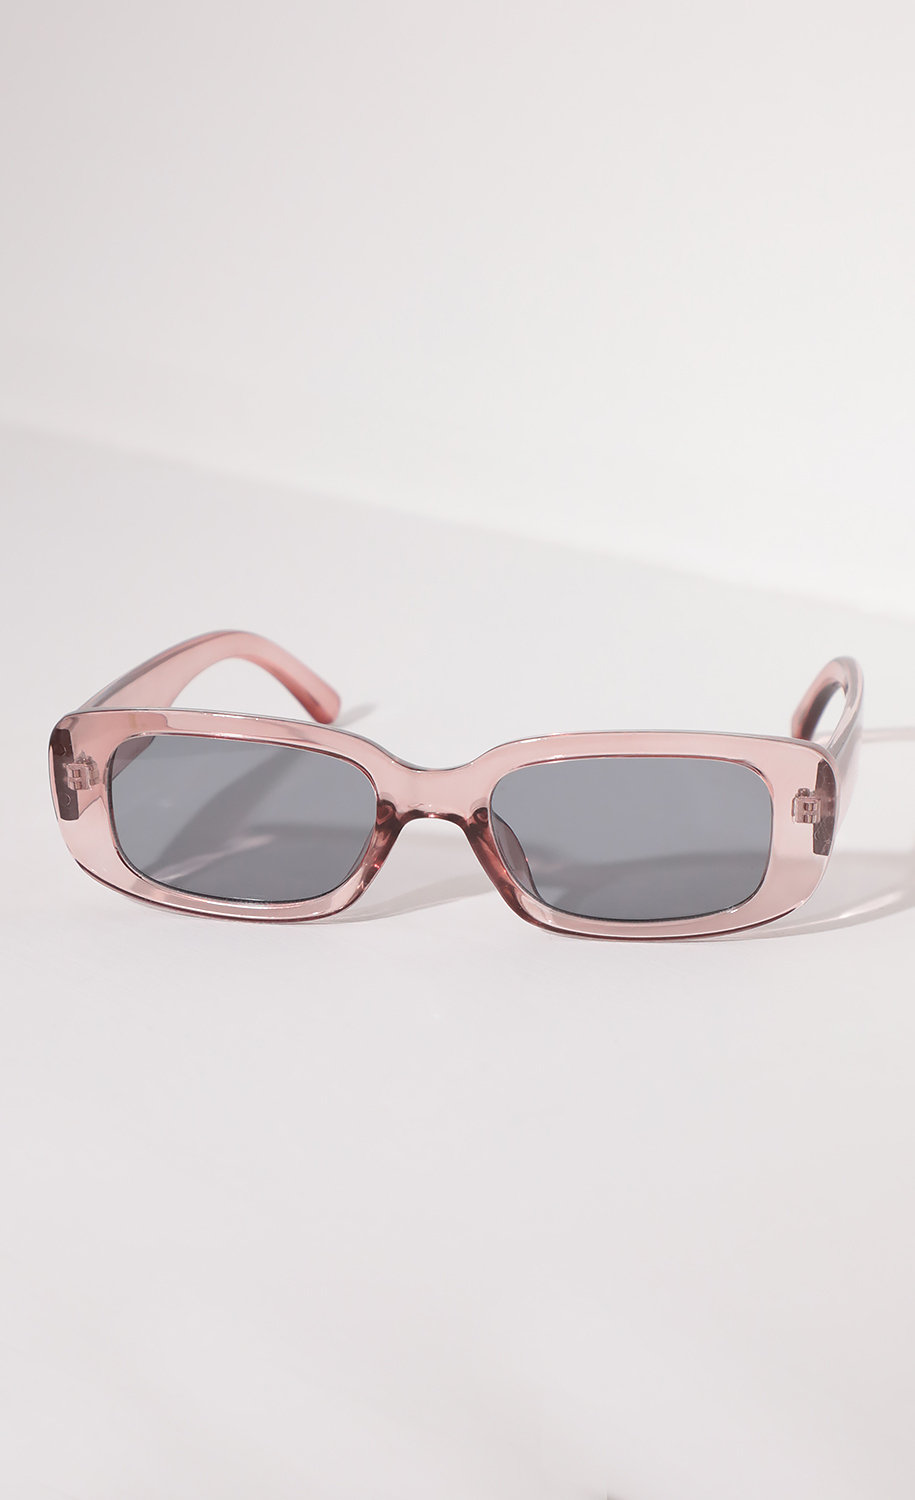 Beverly Rectangular Retro Sunglasses in Clear Pink